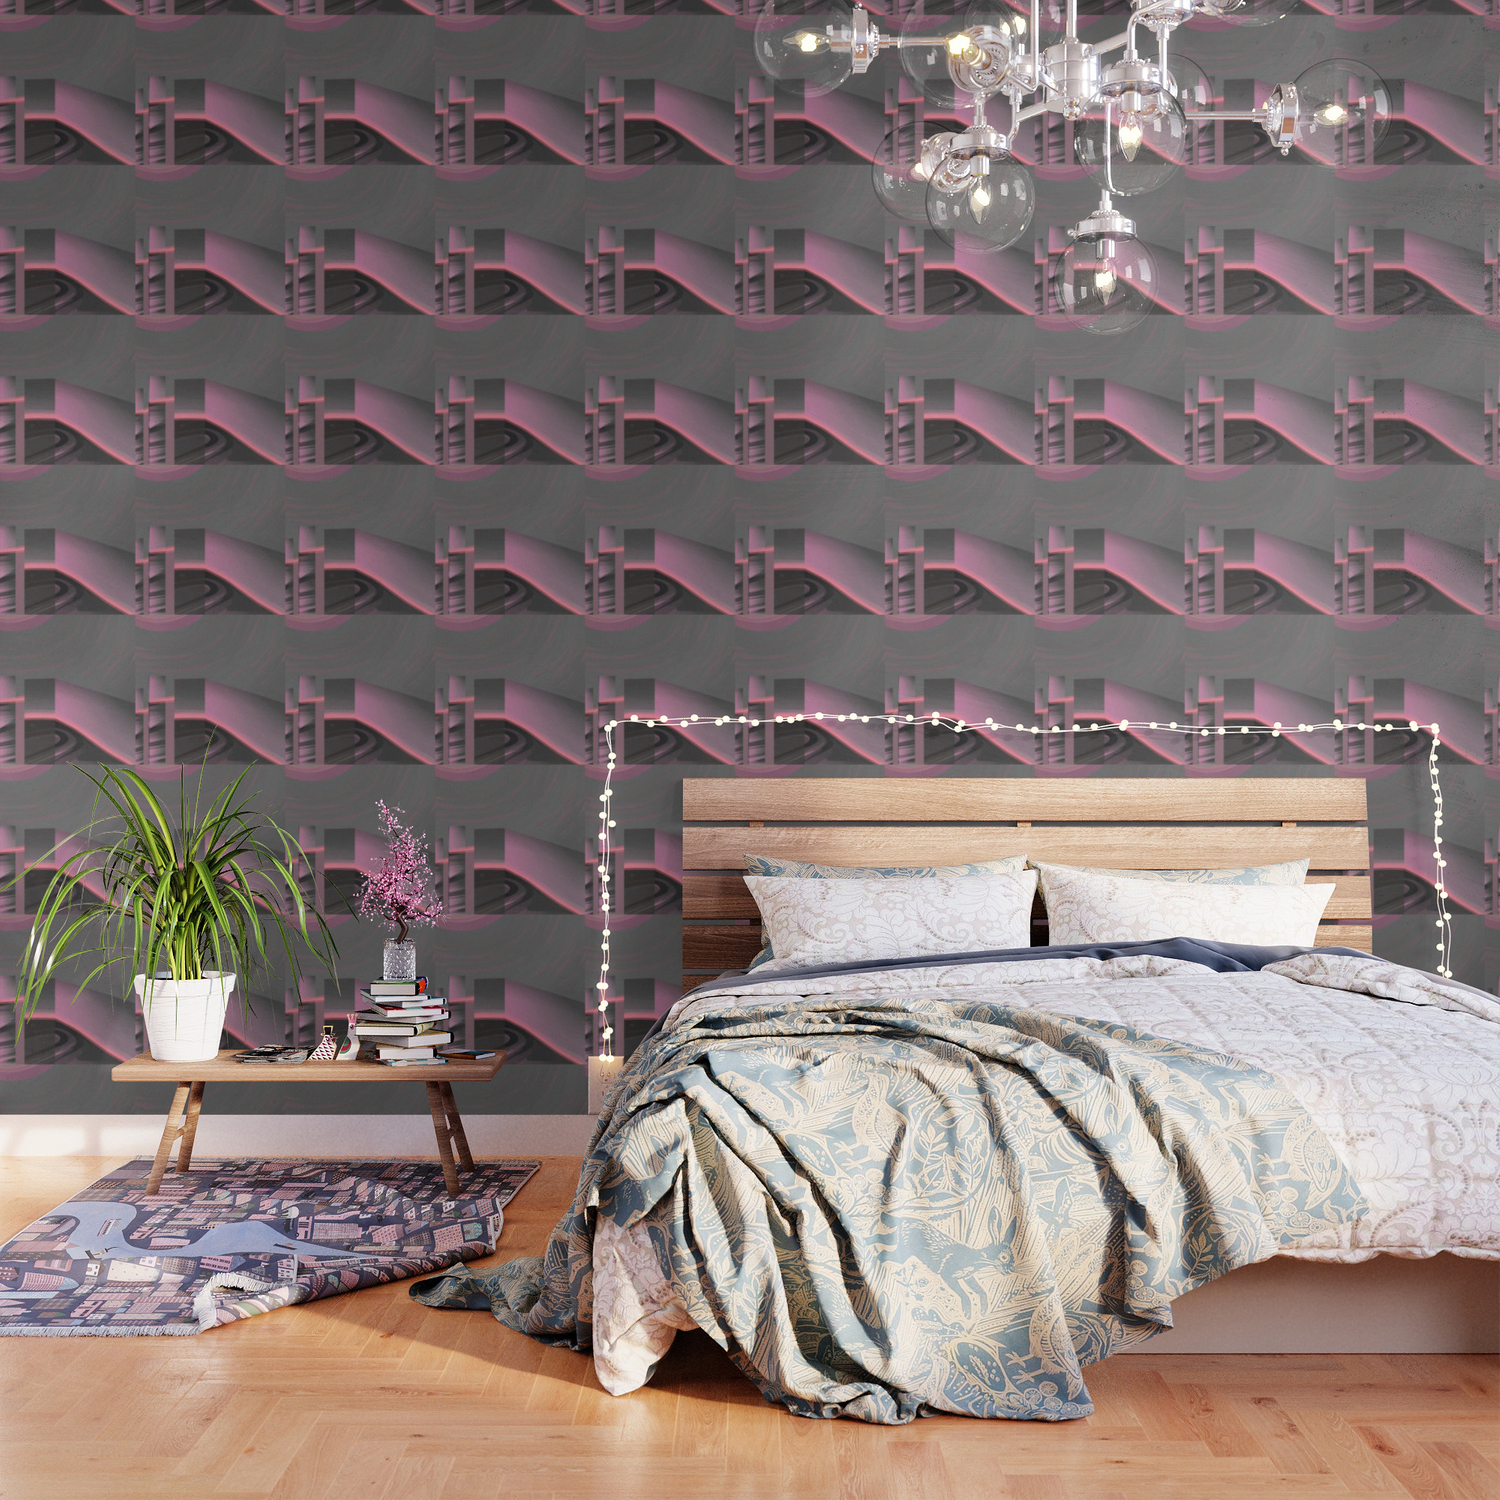 Claraboya Geodesic Habitacle Pink neon room Wallpaper by 1500x1500